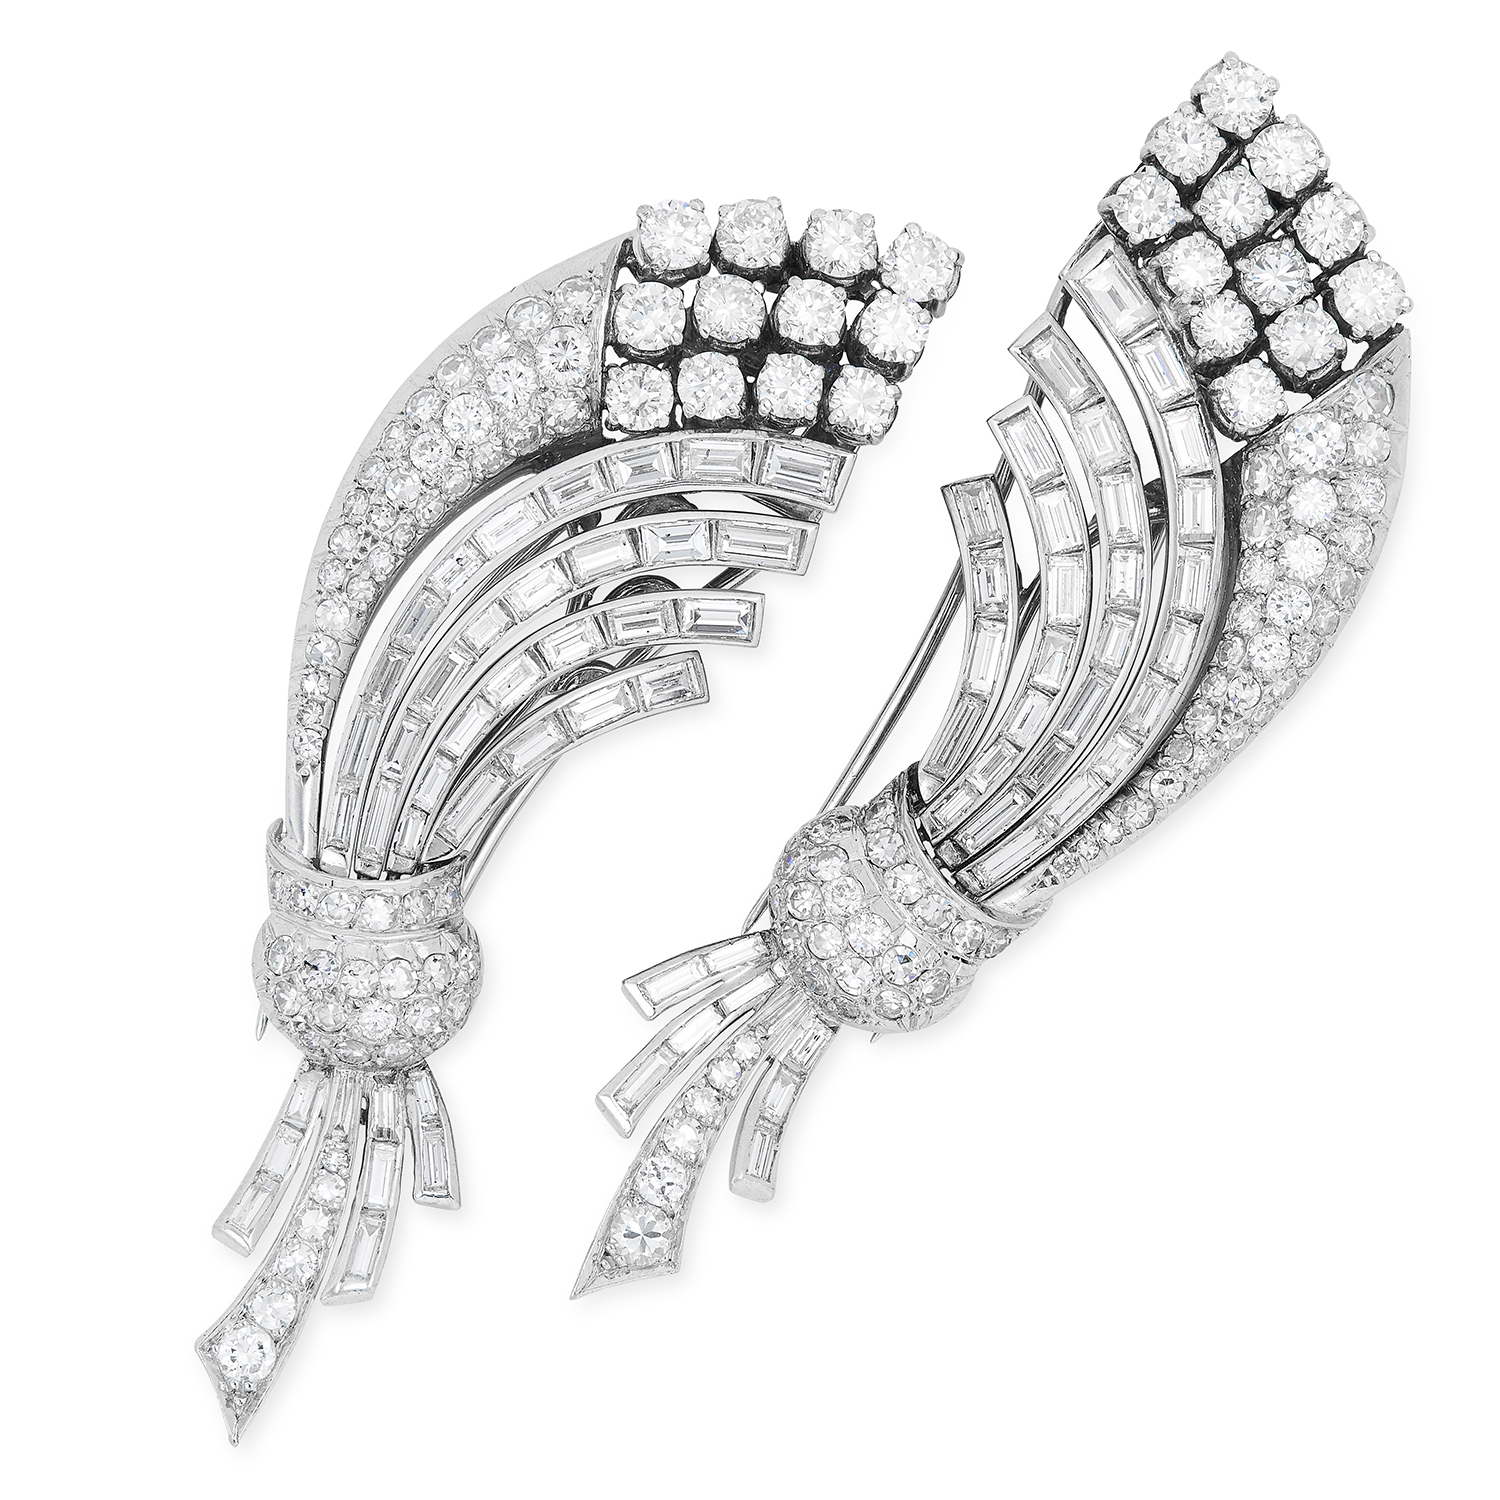 A PAIR OF VINTAGE 18.00 CARAT DIAMOND CLIPS in flower spray design, set with round and baguette - Image 2 of 2